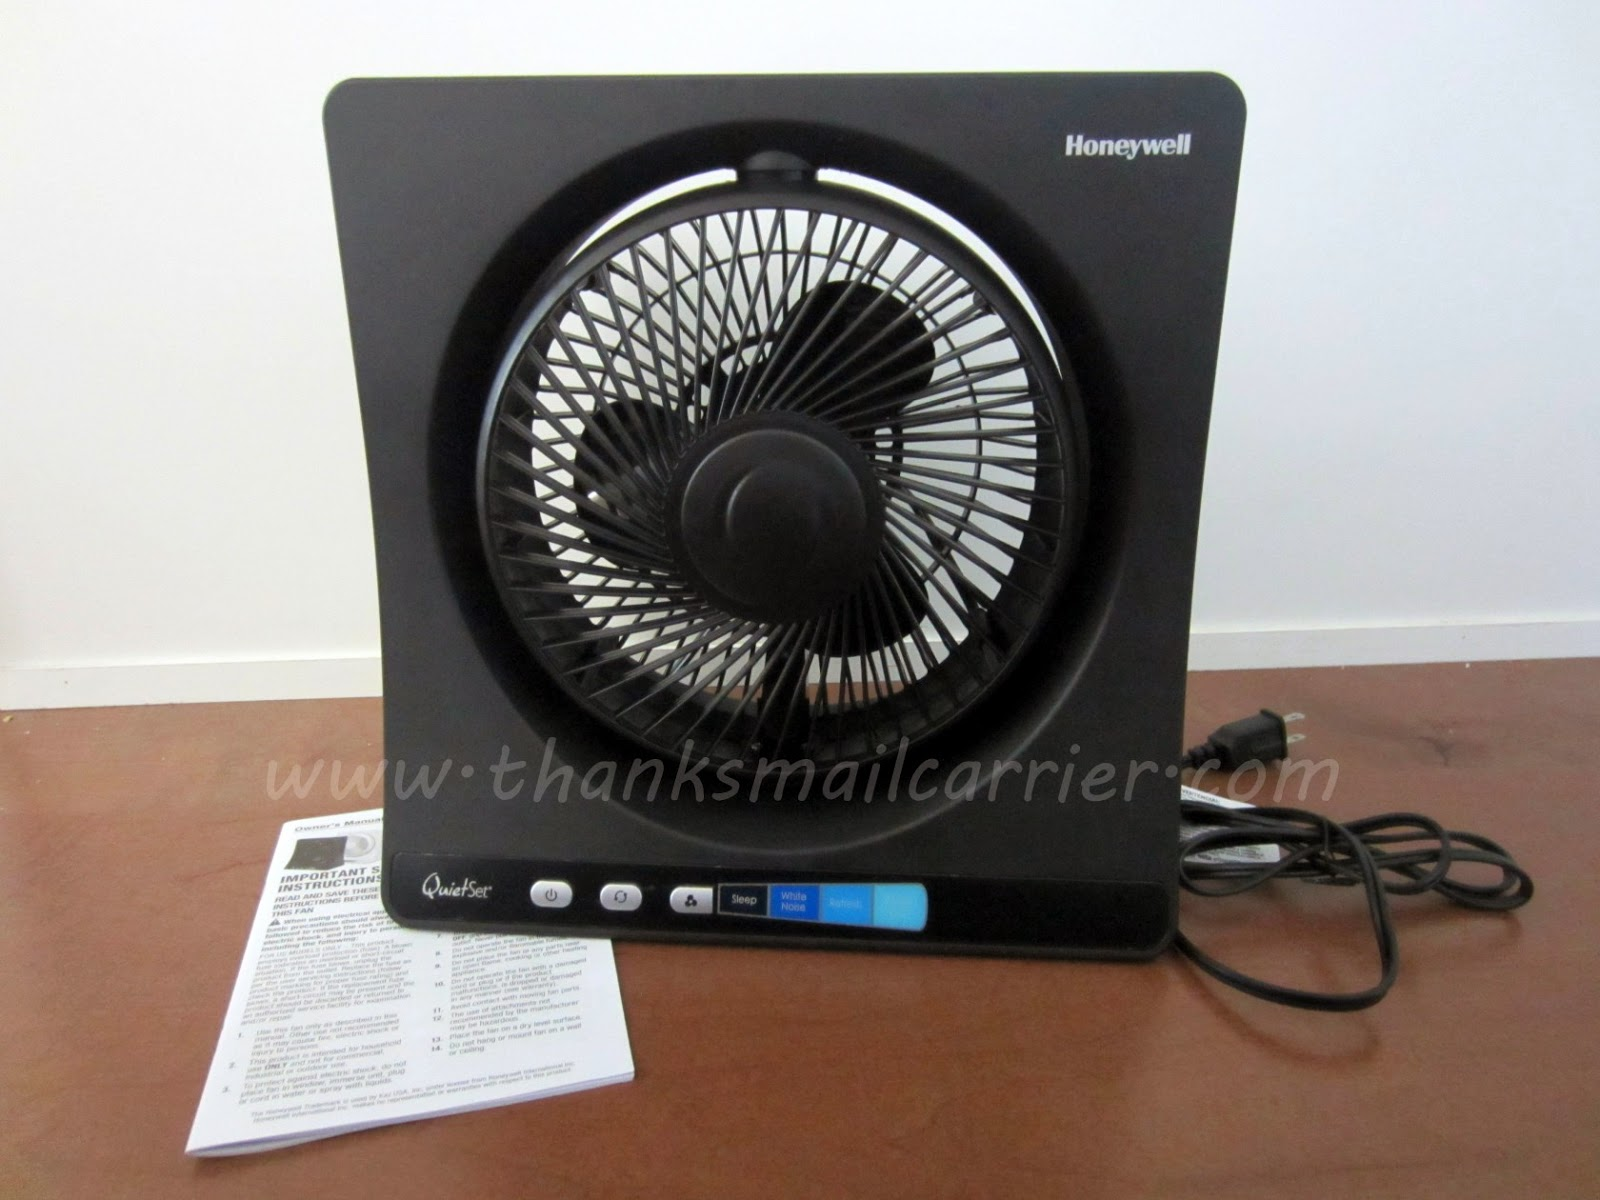 Honeywell QuietSet Table Fan review